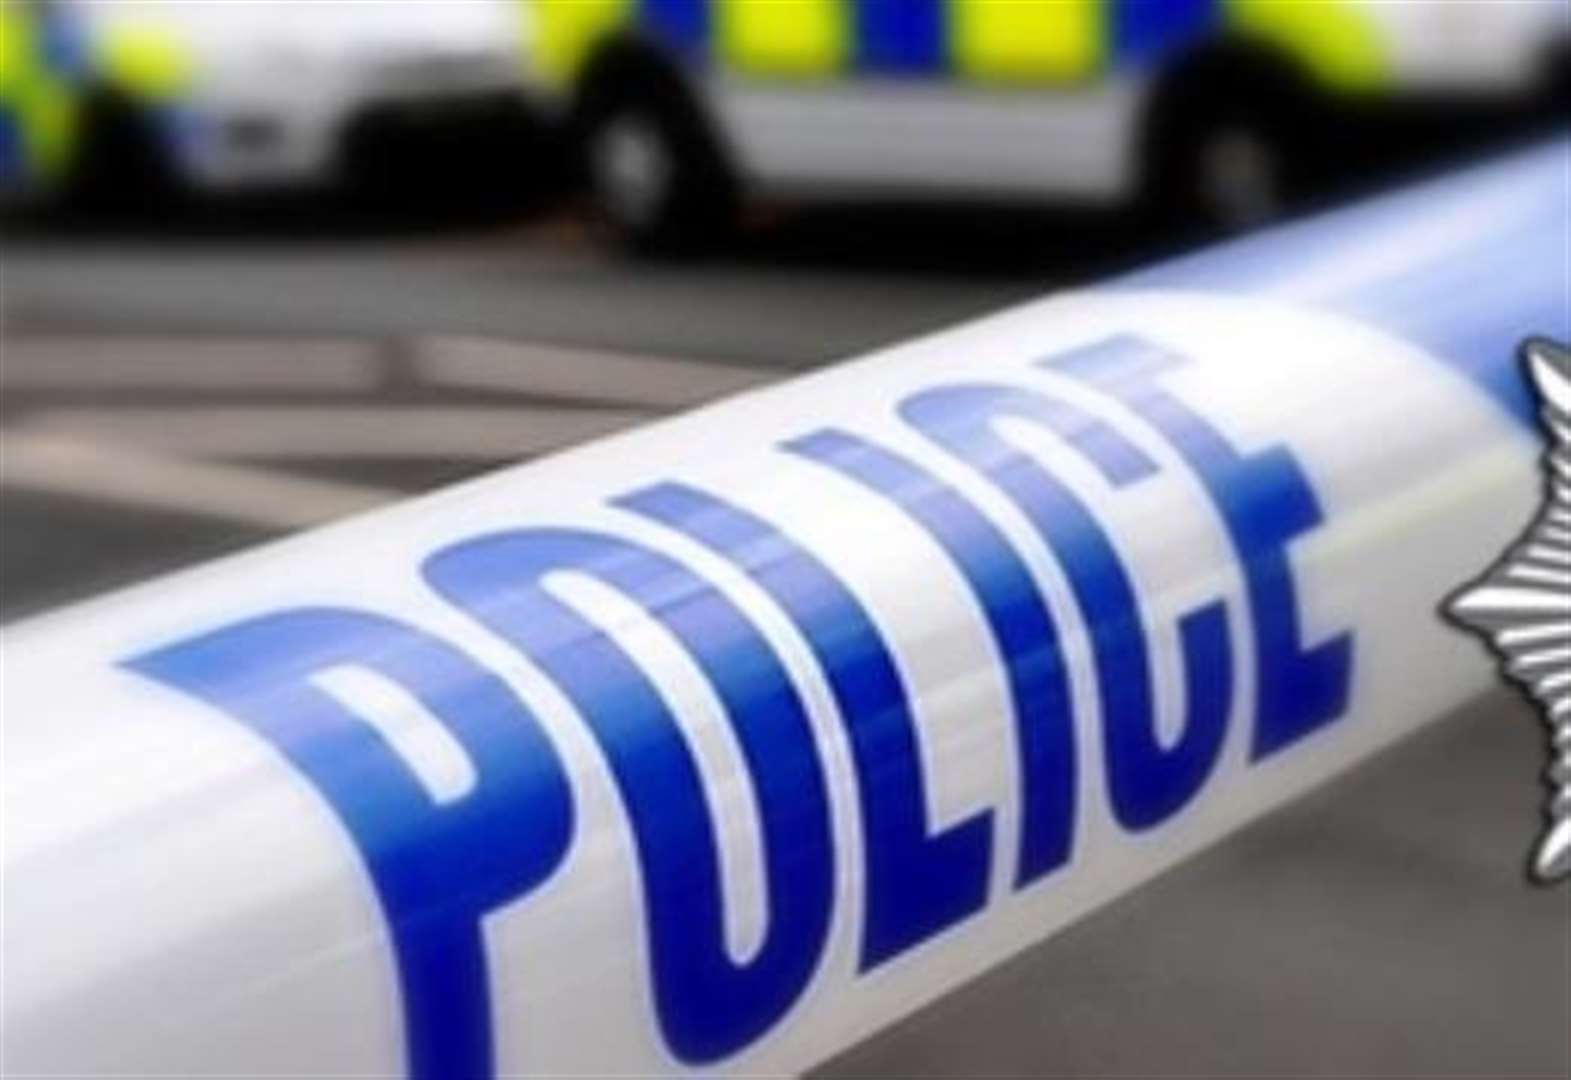 Man charged over post office break-in